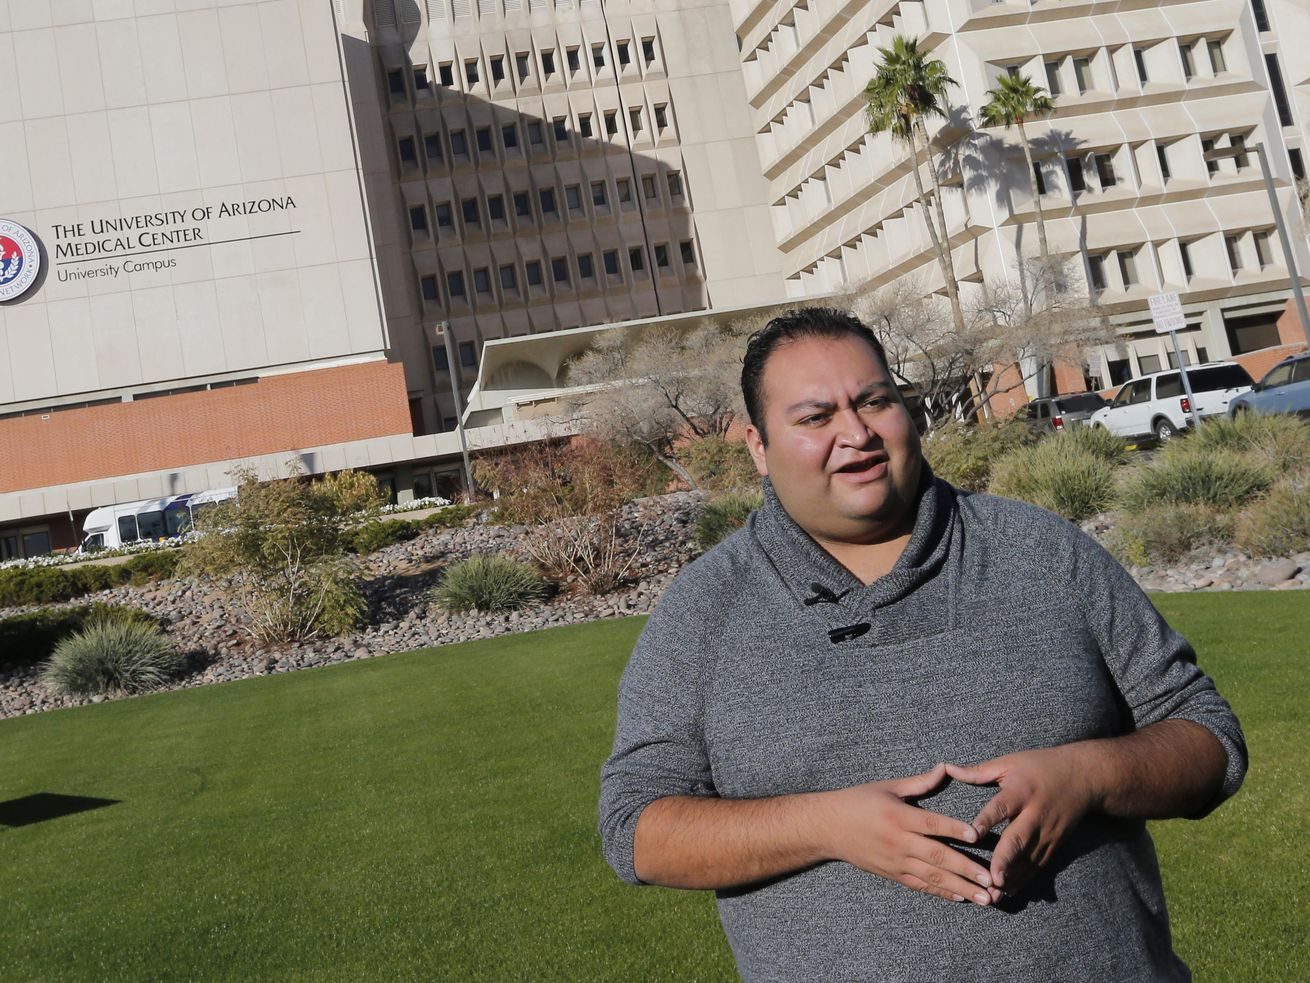 In this Jan. 8, 2014, file photo, Daniel Hernandez Jr., a former intern for U.S Rep. Gabrielle Giffords, speaks prior to a remembrance ceremony on the third anniversary of the Tucson shootings, in Tucson, Ariz.